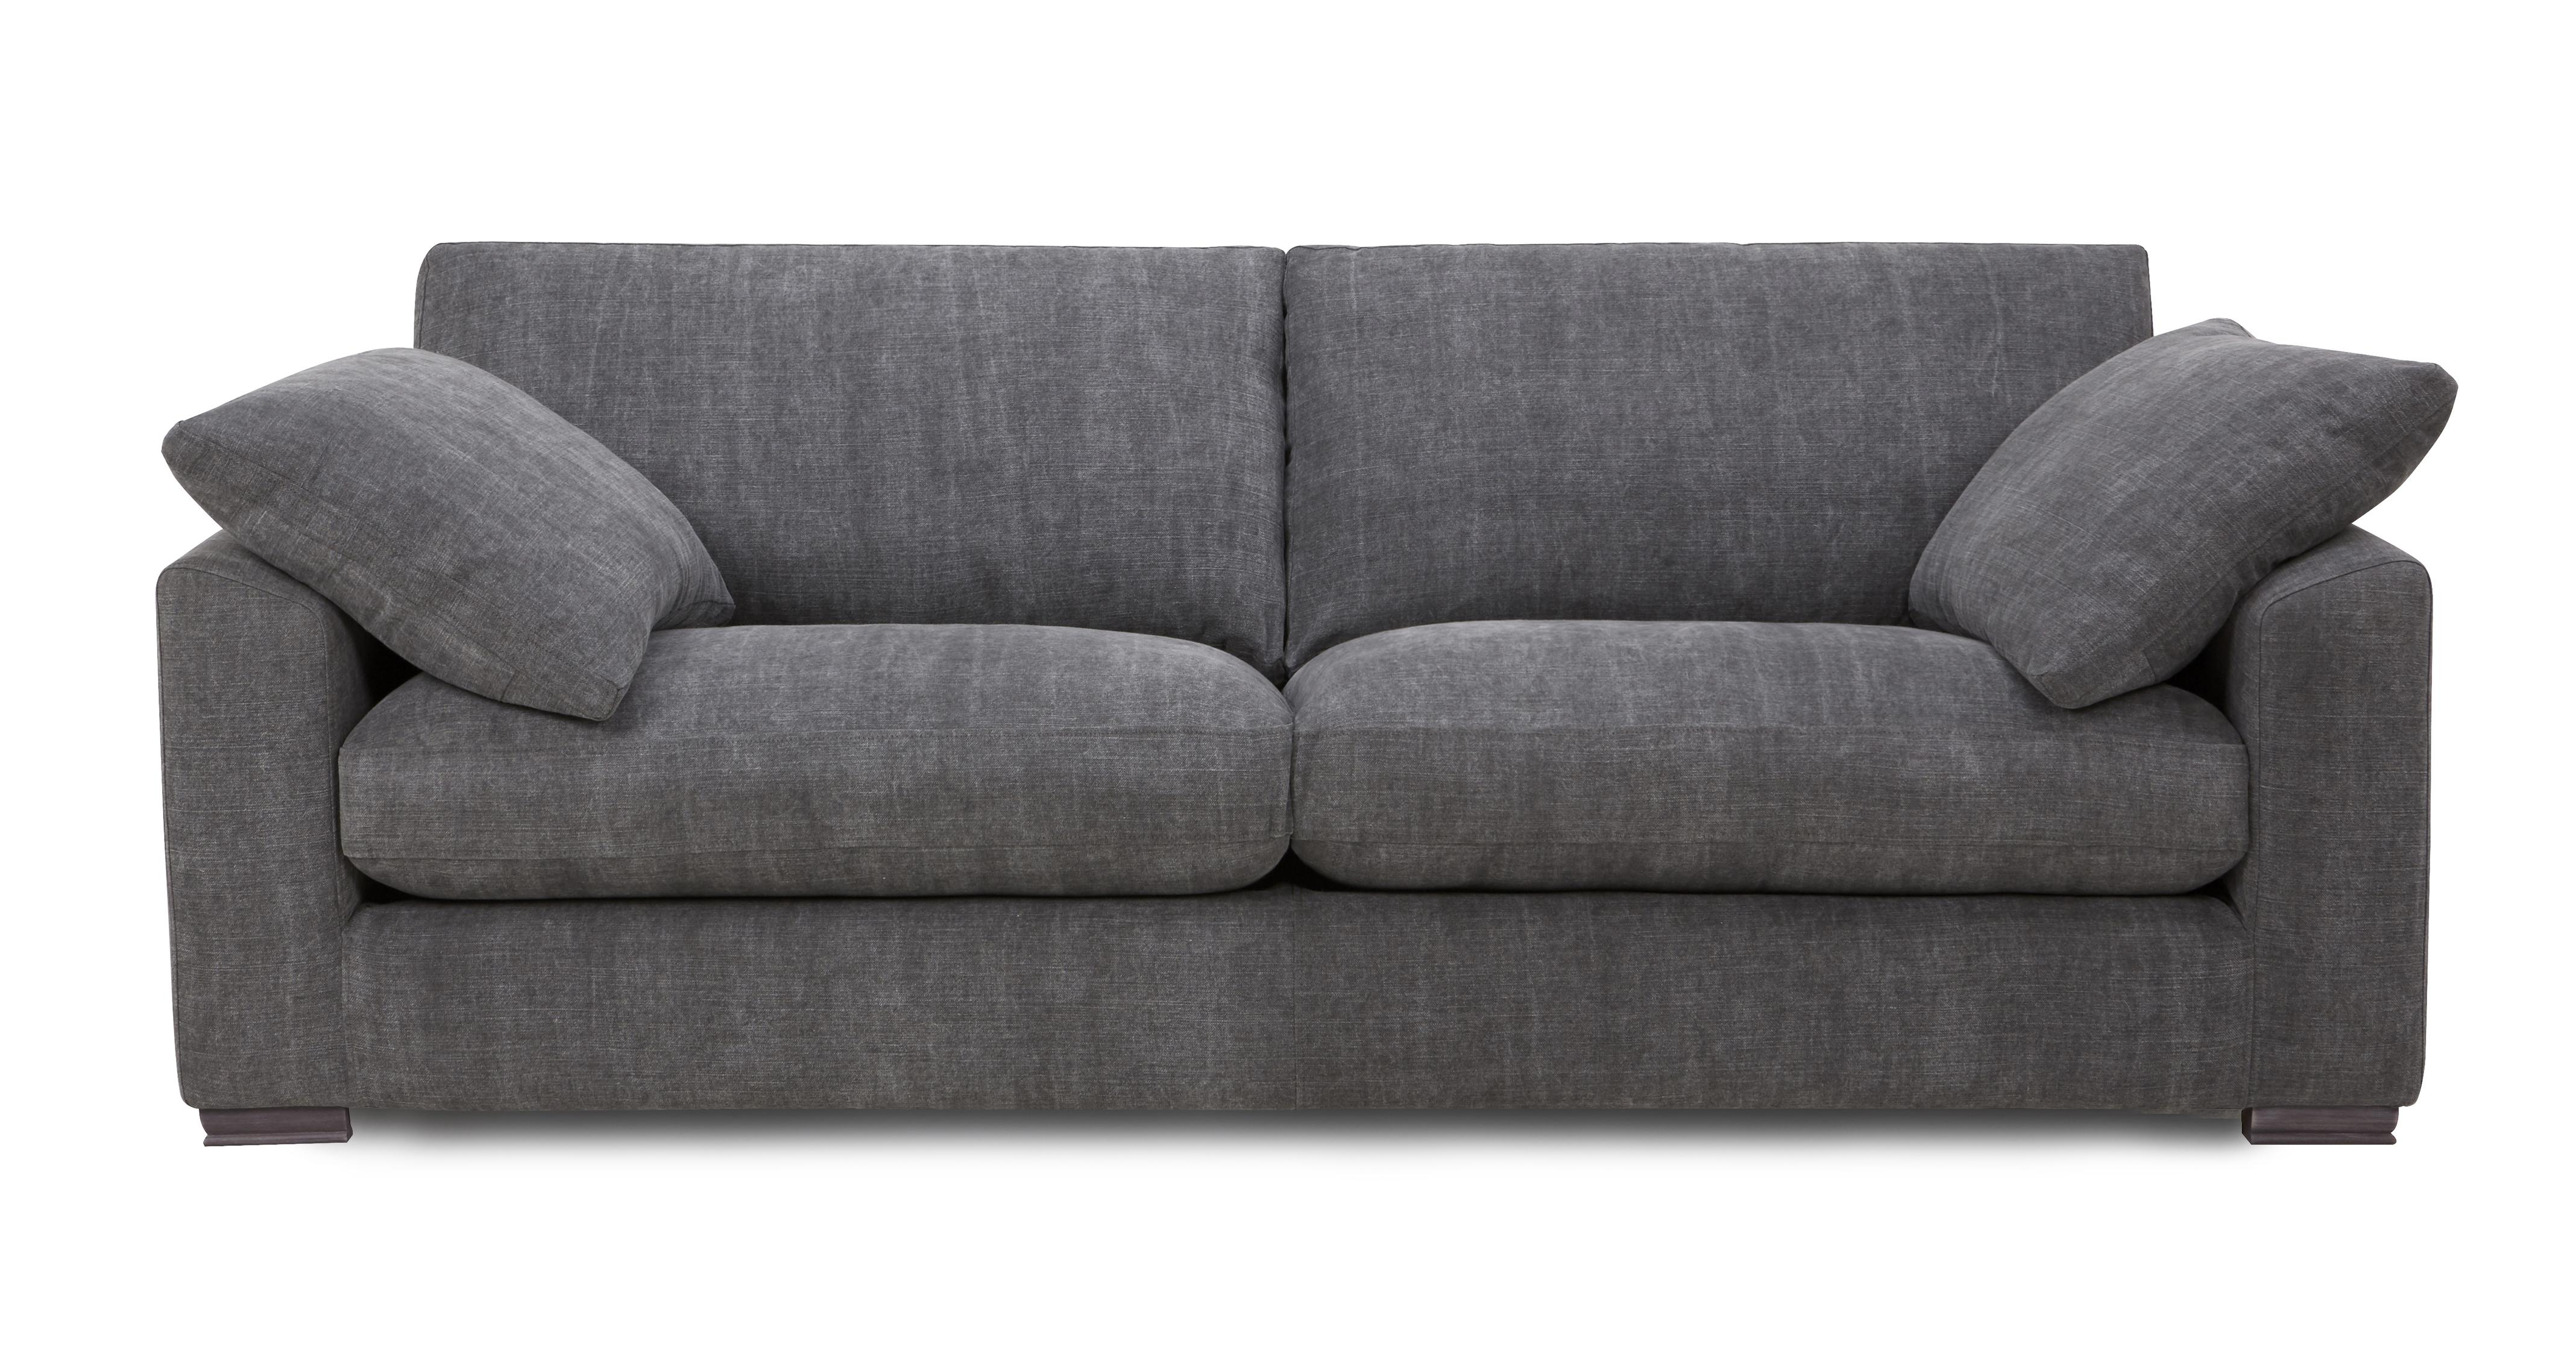 Exceptional Keswick 3 Seater Sofa | DFS Ireland